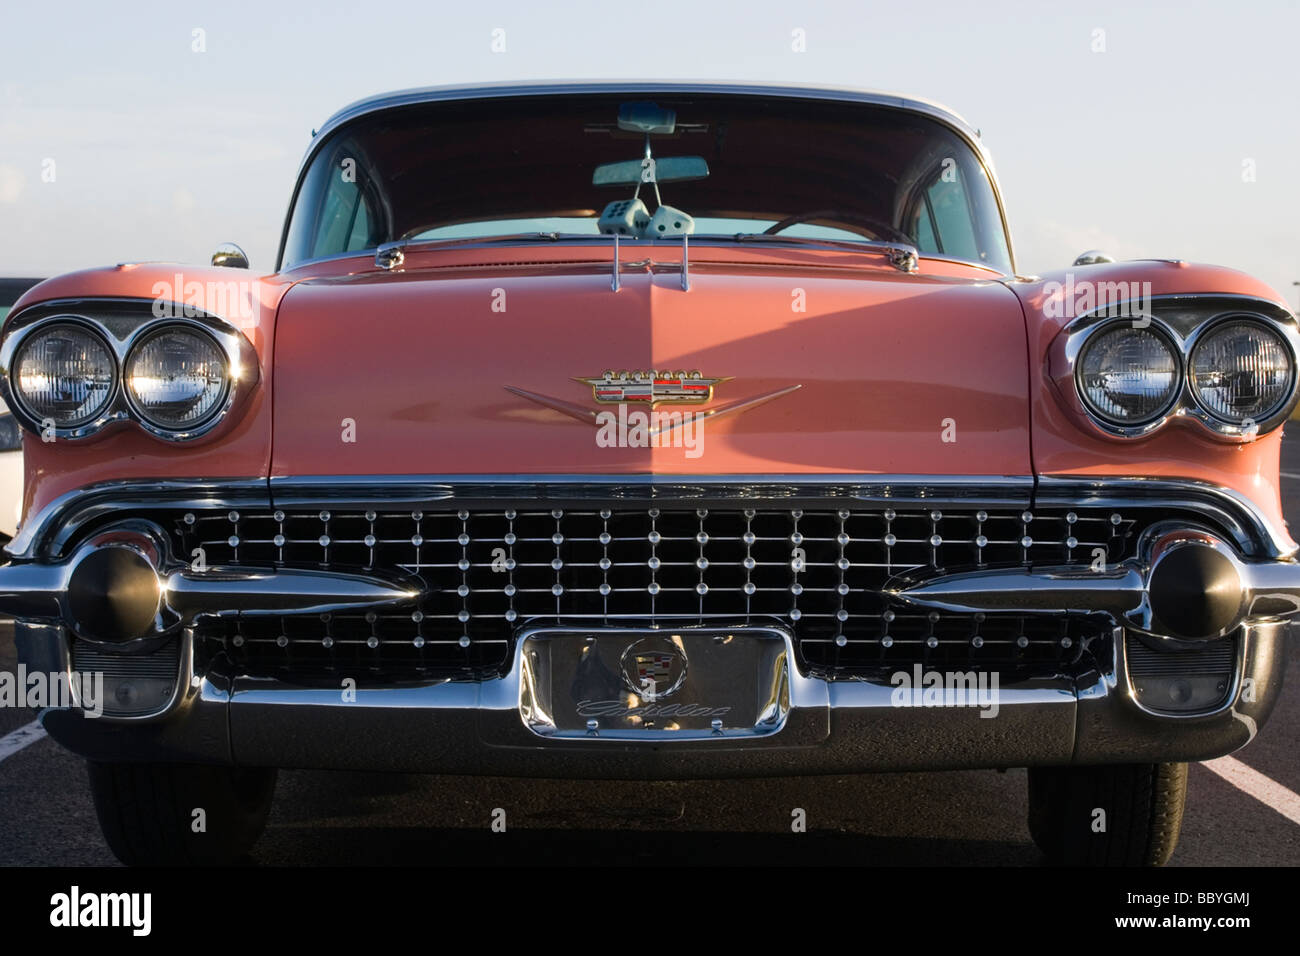 Pink Cadillac in Florida - front view - Stock Image